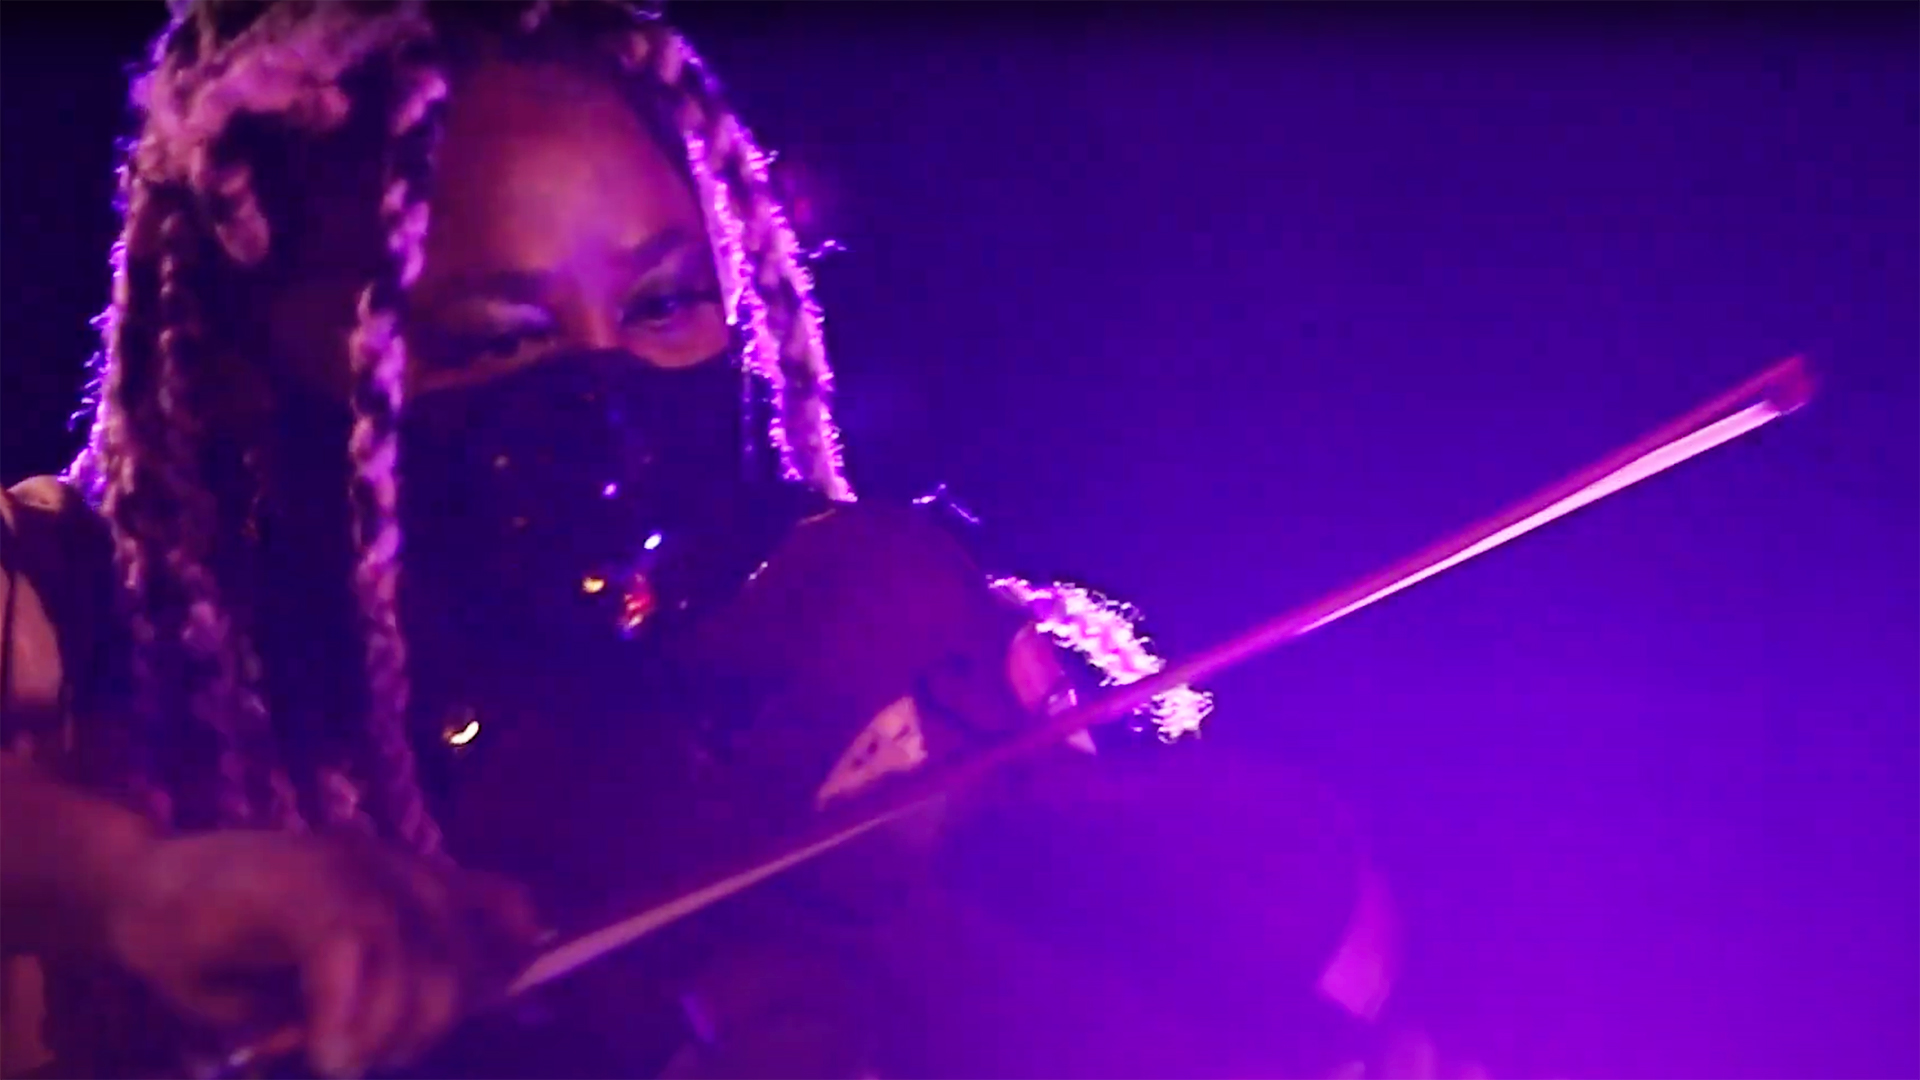 A violinist plays with a COVID mask on in low light